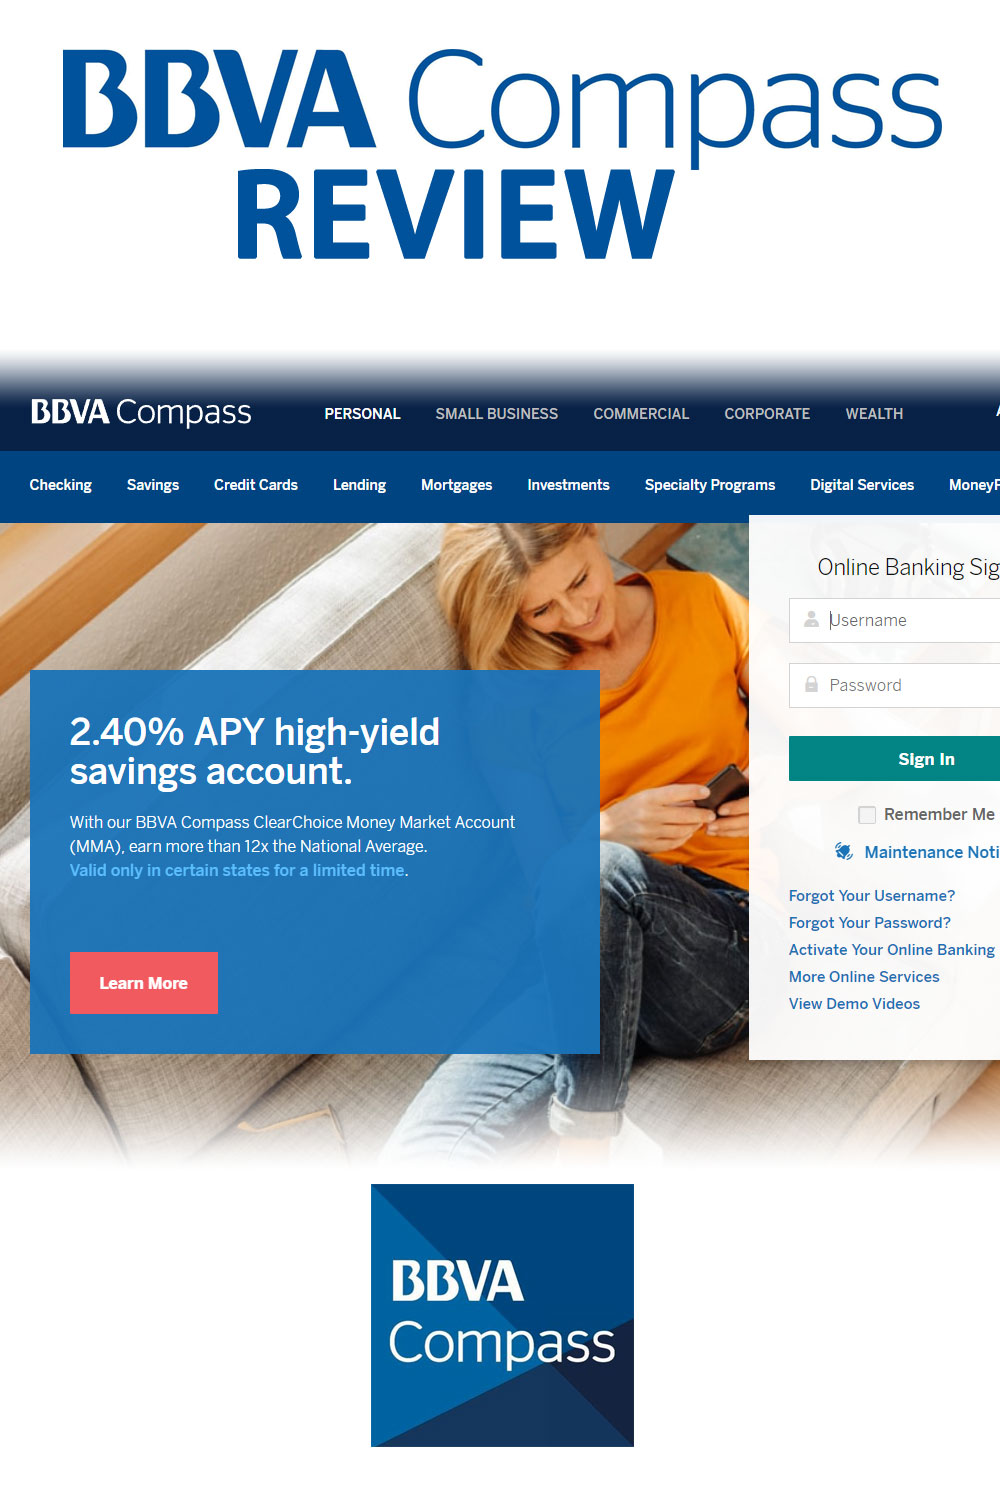 BBVA Bank Review: The Online Bank With Everything